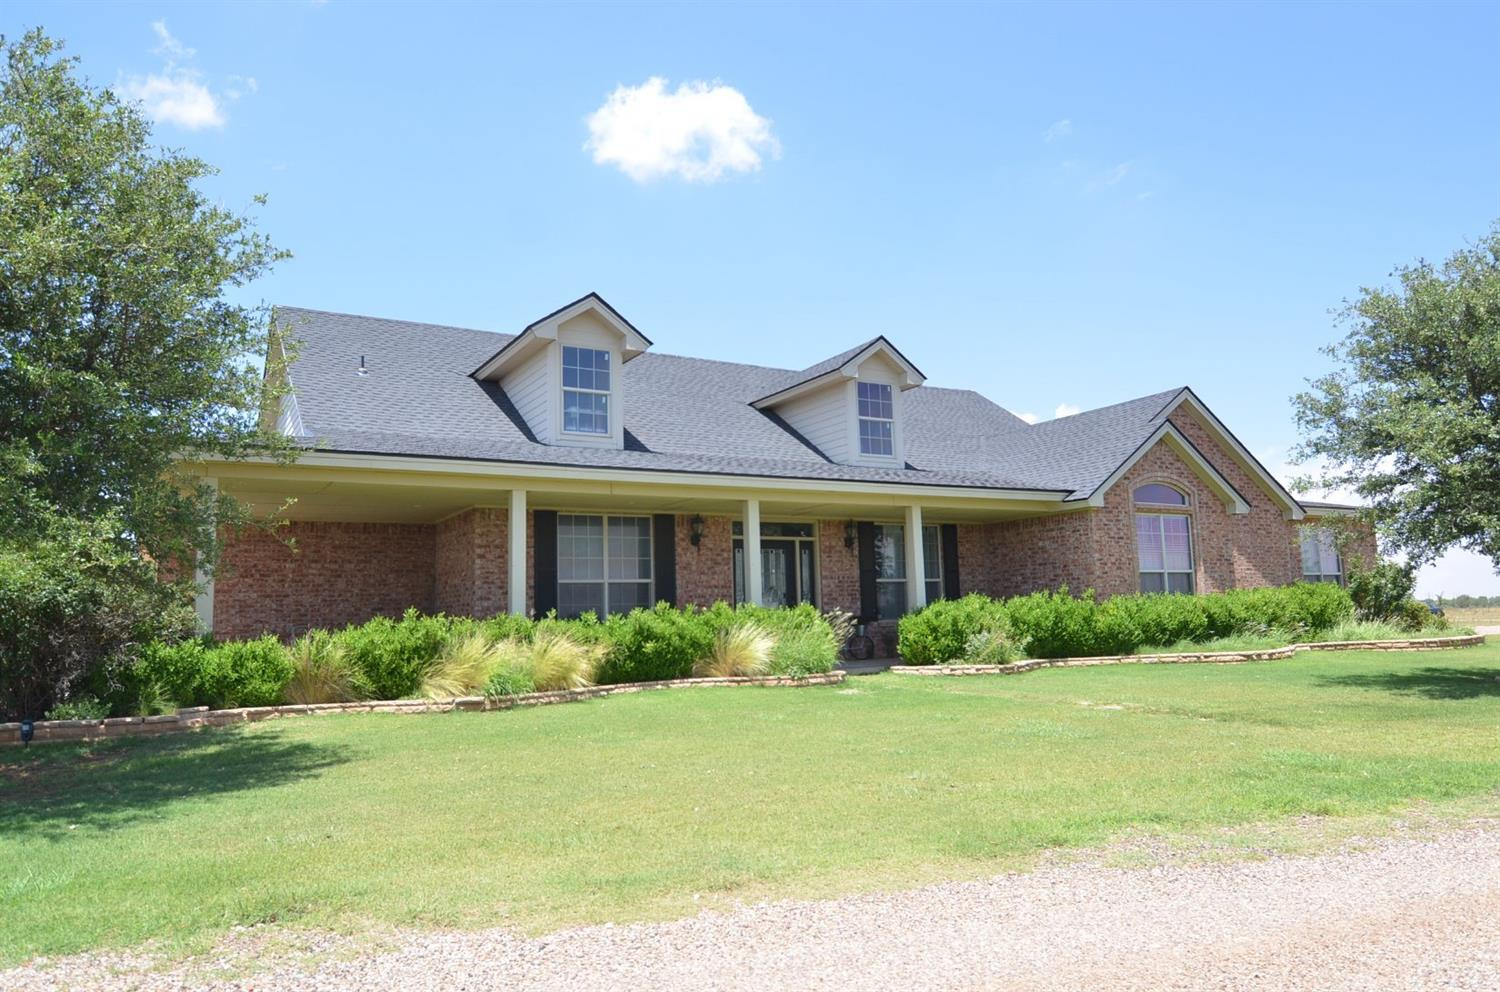 Possibilities are endless with this unique setup!  2 separate houses that share a backyard is perfect for extended families, assisted living facility, event center or more, all in the desired Shallowater ISD, on over 3 acres.  Front house is a 5/4/4 with over 4500 sq ft and includes an office, basement and an unfinished bonus room of almost 1000 sq ft not included in the square footage.  Back house is a 3/2.5./3 with 3500 sq feet including a large craft room with endless possibilities and a basement.  The houses share afenced backyard with a covered saltwater pool and barn.  Additional 40 acres available at $5,000/acre.  Houses Must be sold together.